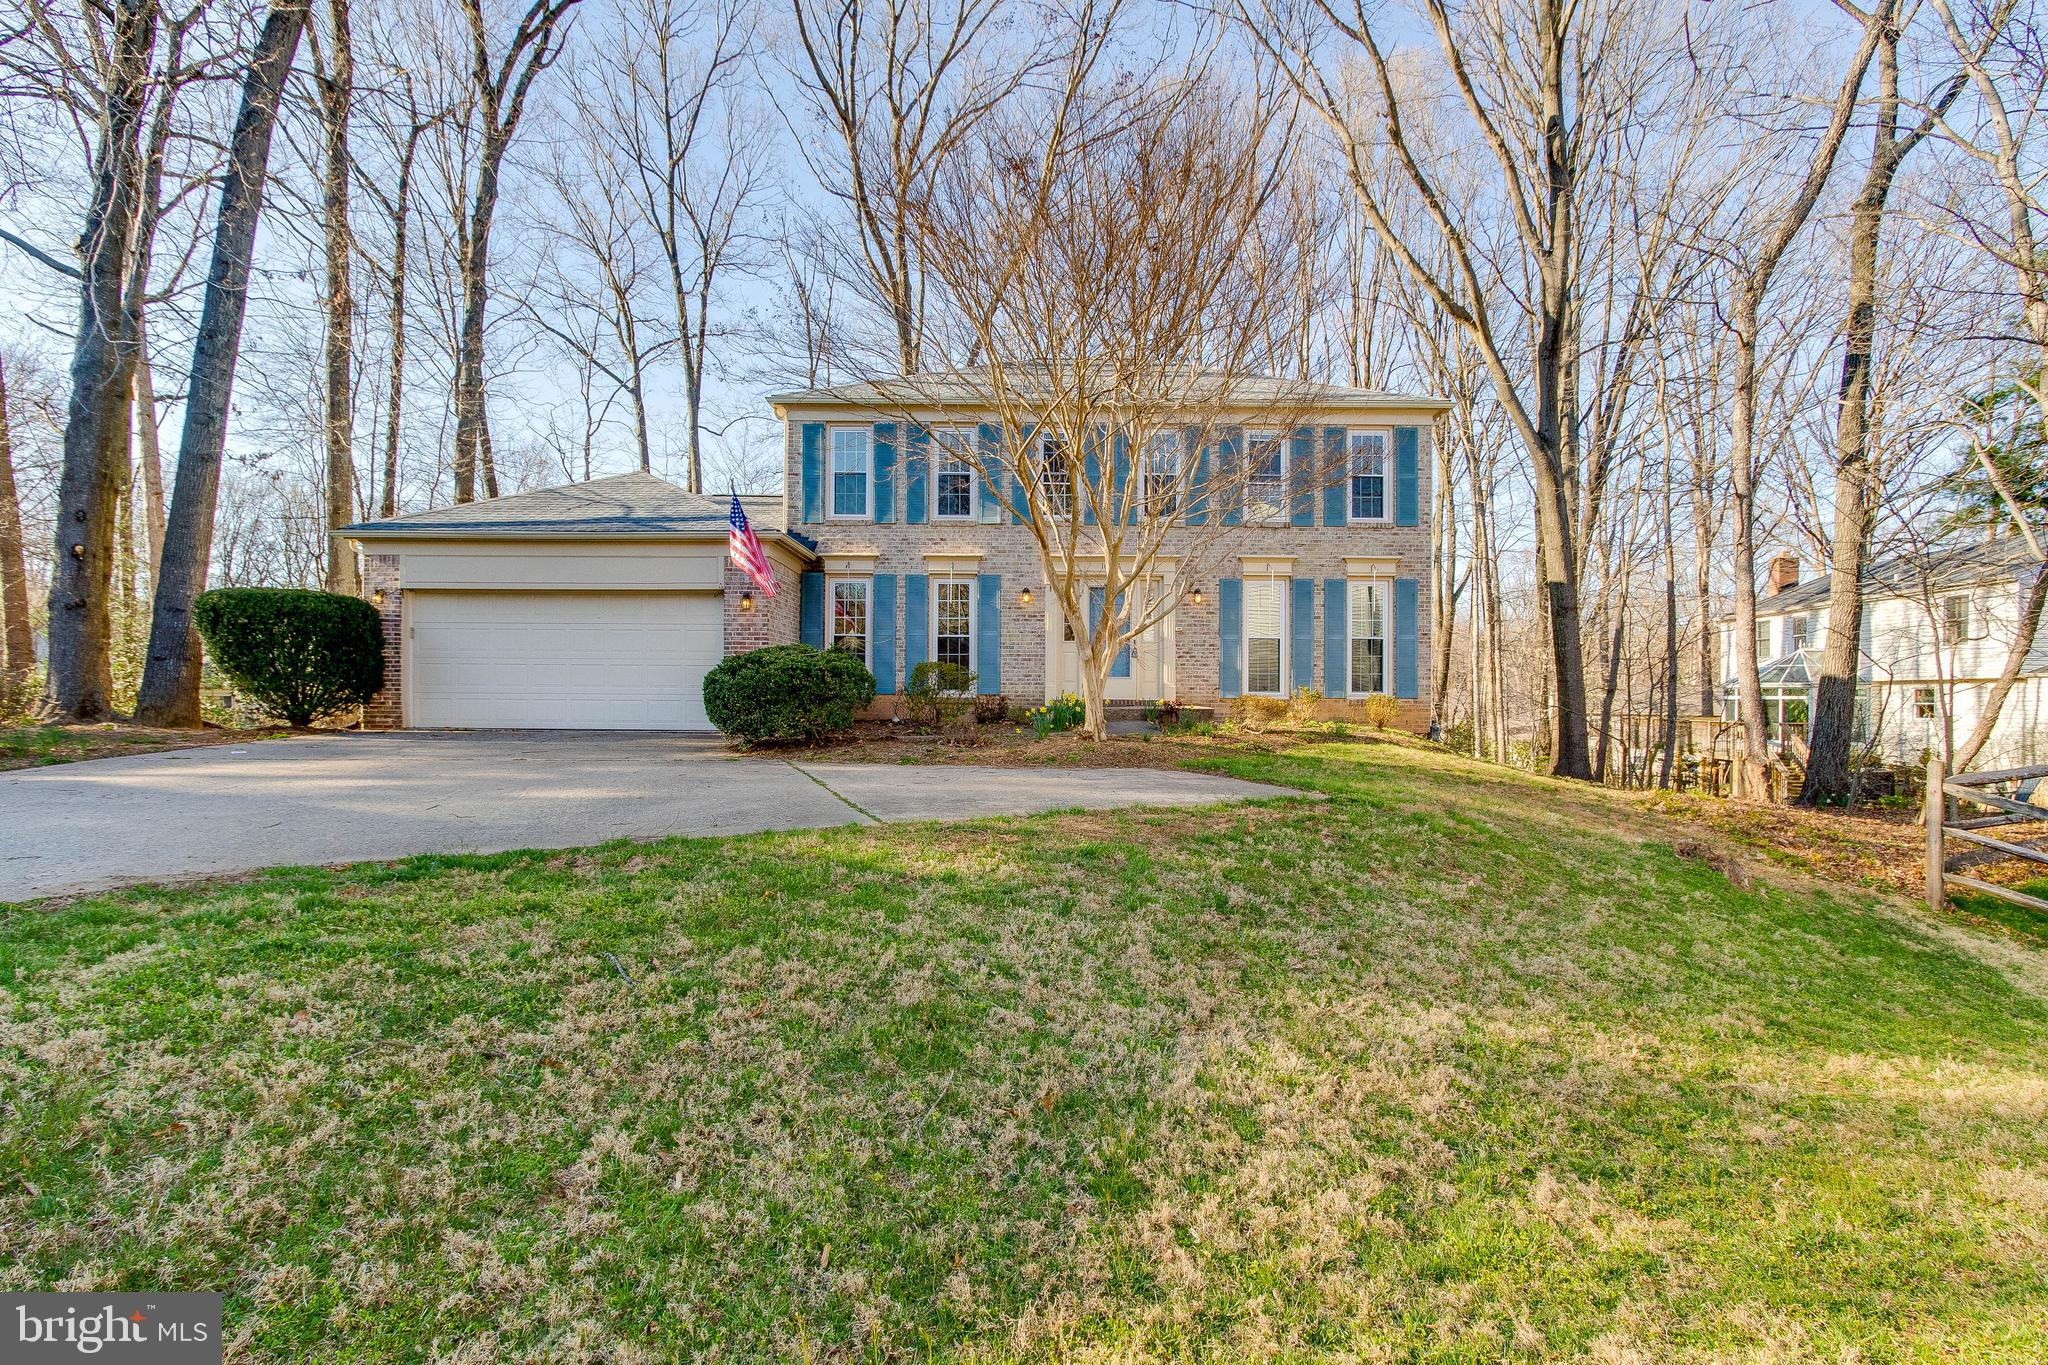 Wonderful brick front colonial on over a one-third acre lot in prestigious Burke Centre. This home features a spacious kitchen with plenty of counter and cabinet space, stainless steel appliances and more. Separate dining room and large family room with brick fireplace, built-ins and access to your screened in porch and deck. The main level has a master bedroom with full bath, large closet and french doors. Outstanding walk-out lower level with rec room, large laundry area and plenty of extra space to make your own. This home backs to trees for you to enjoy the outdoors any time of the year. This home is also handicap accessible if needed.This home is a must see!